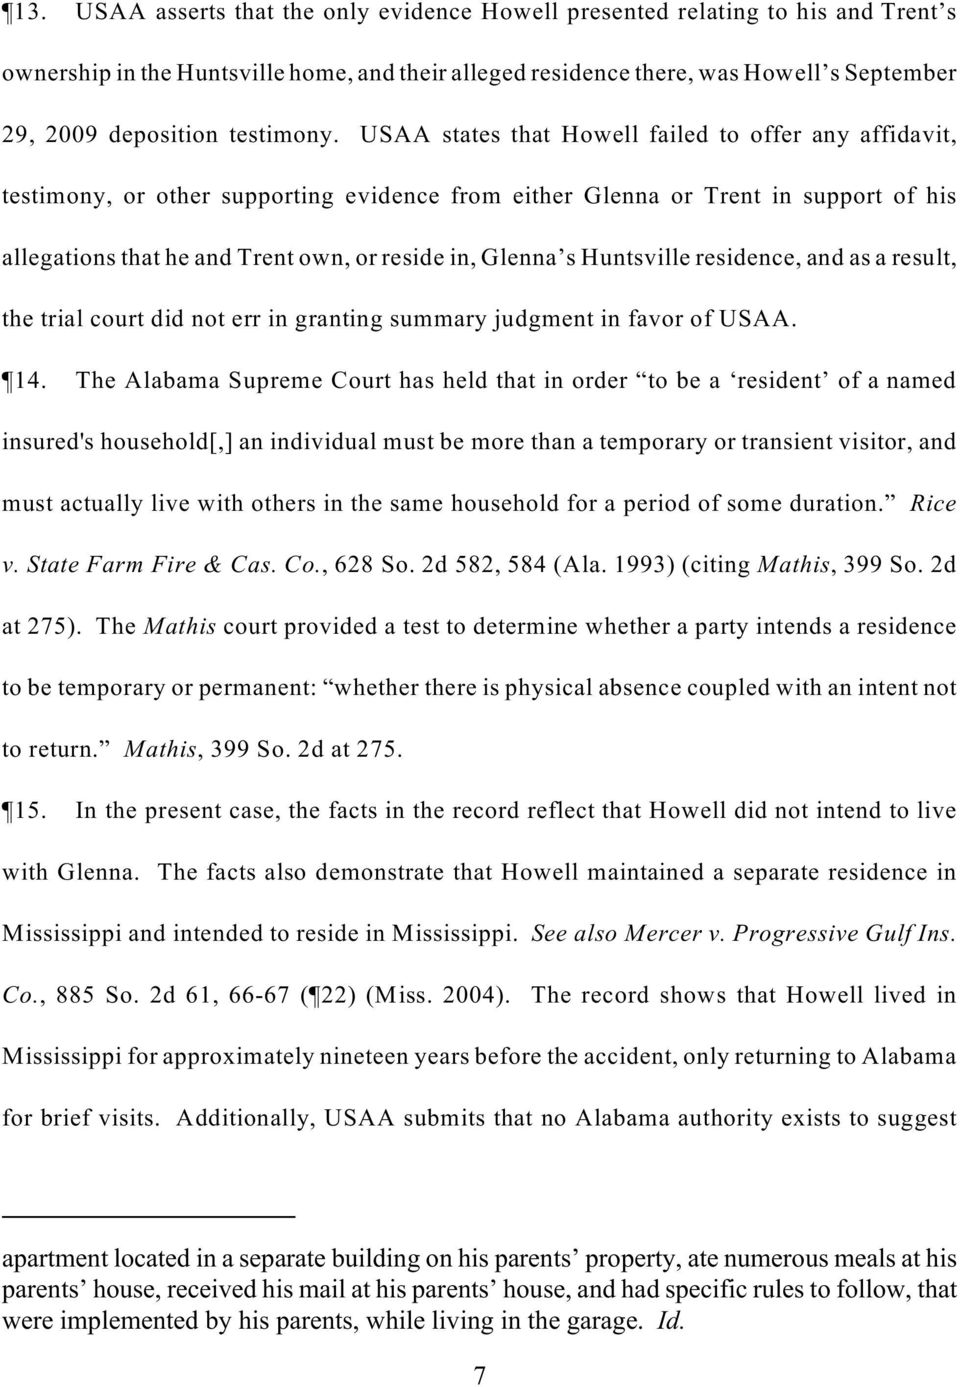 USAA states that Howell failed to offer any affidavit, testimony, or other supporting evidence from either Glenna or Trent in support of his allegations that he and Trent own, or reside in, Glenna s